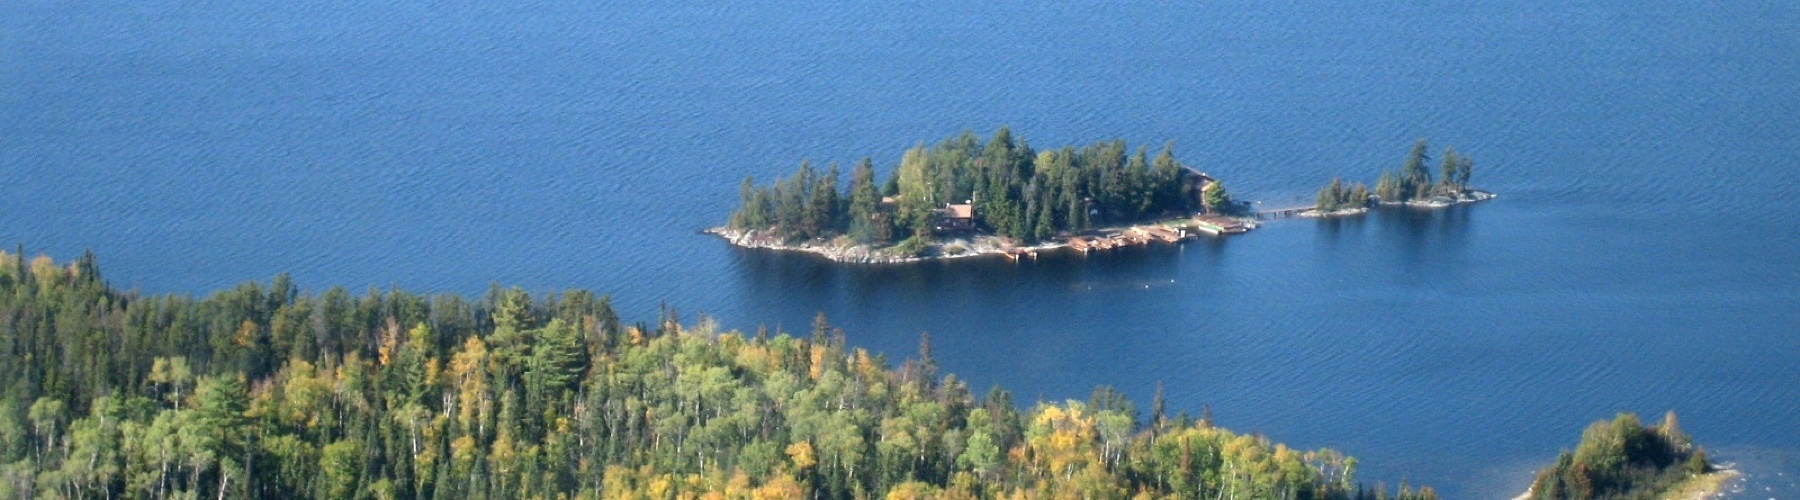 Loch Island Lodge From Air - Ontario Fishing